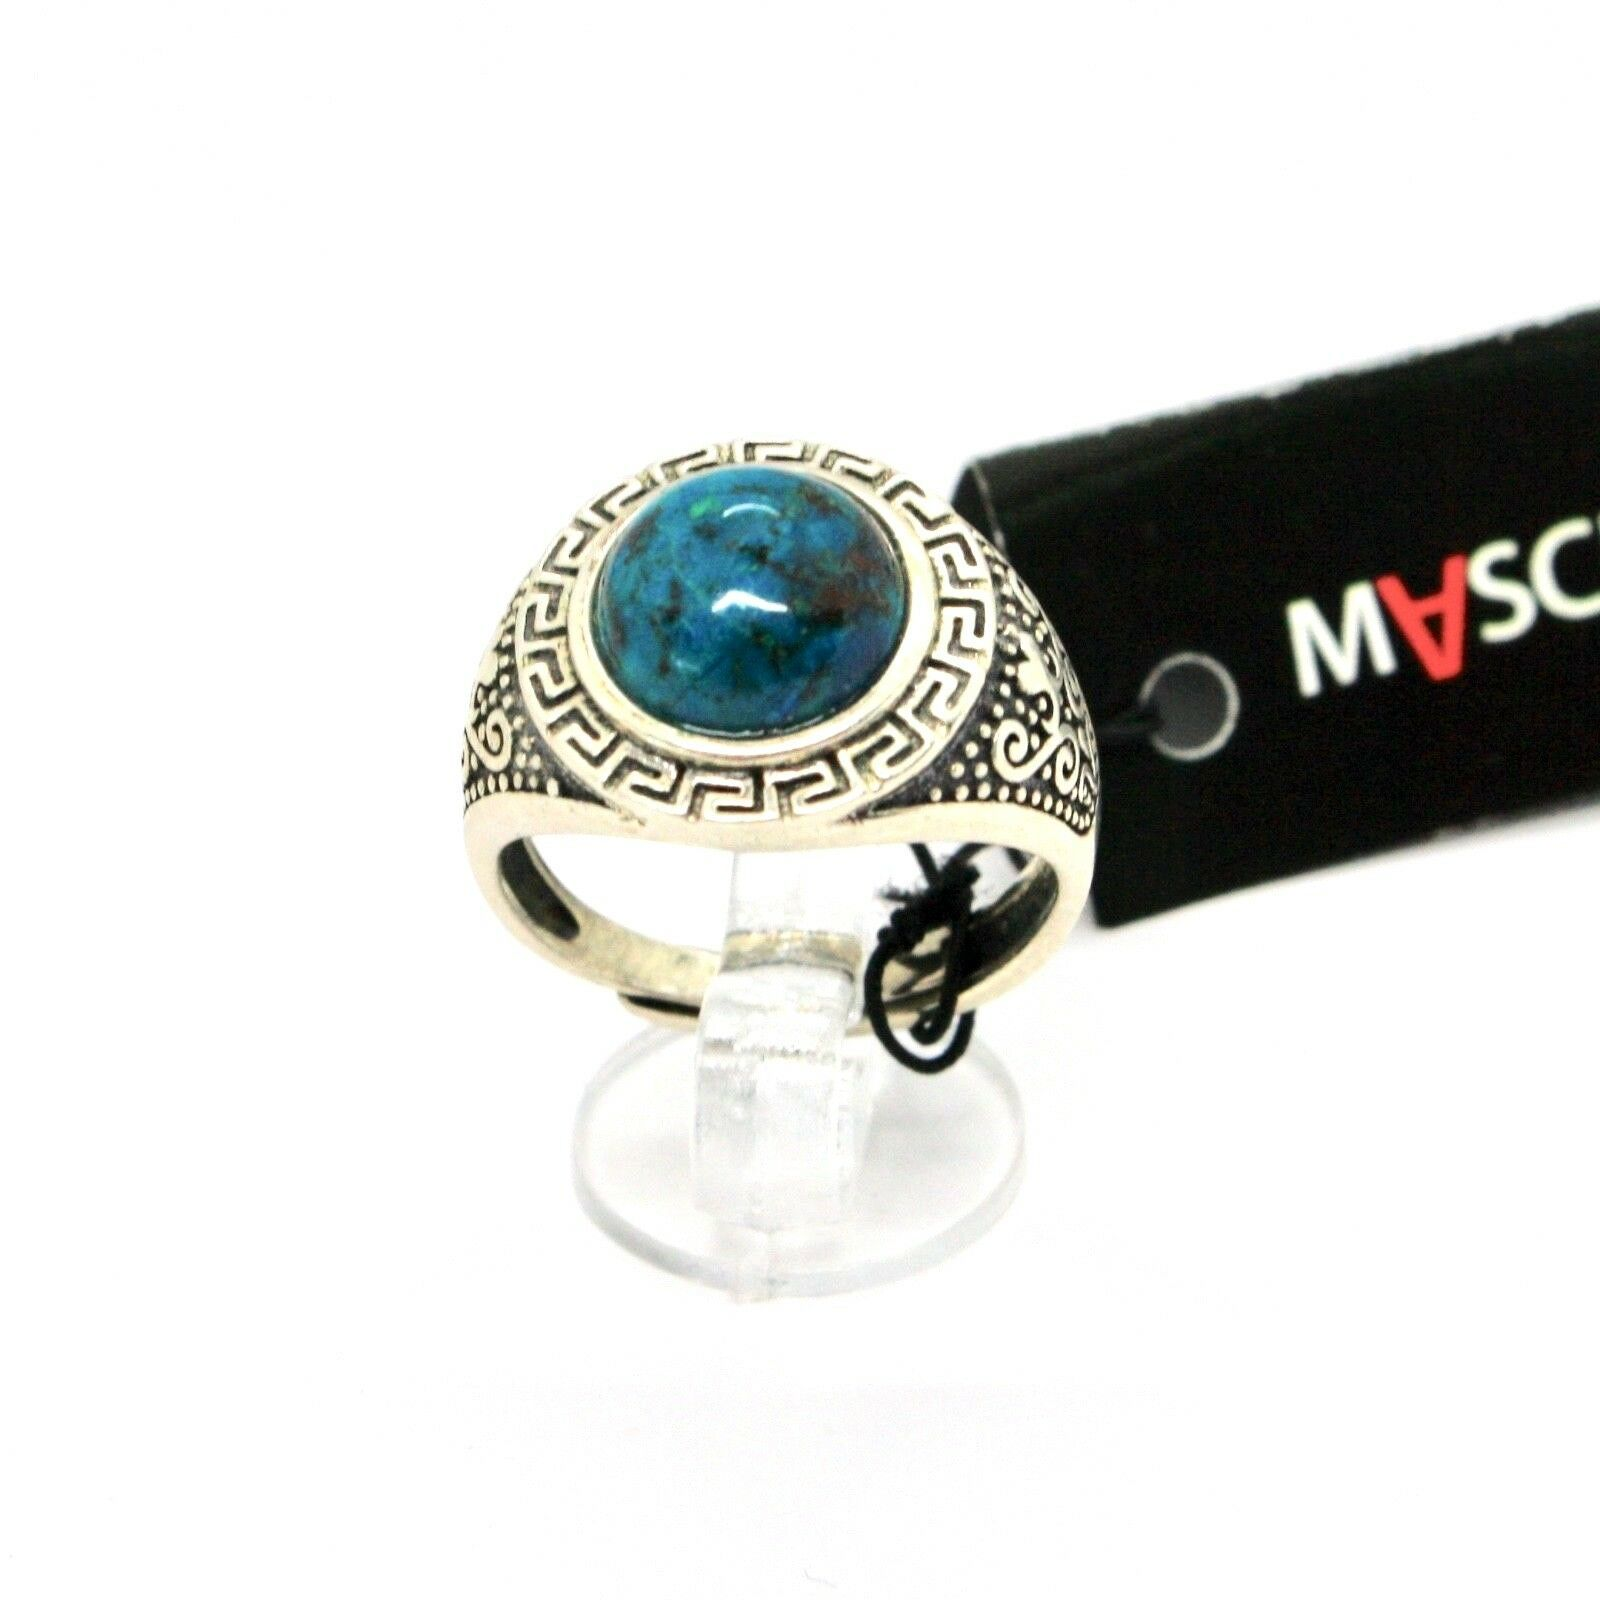 Silver Ring 925 Antique with Chrysocolla Turquoise Made in Italy by Maschia